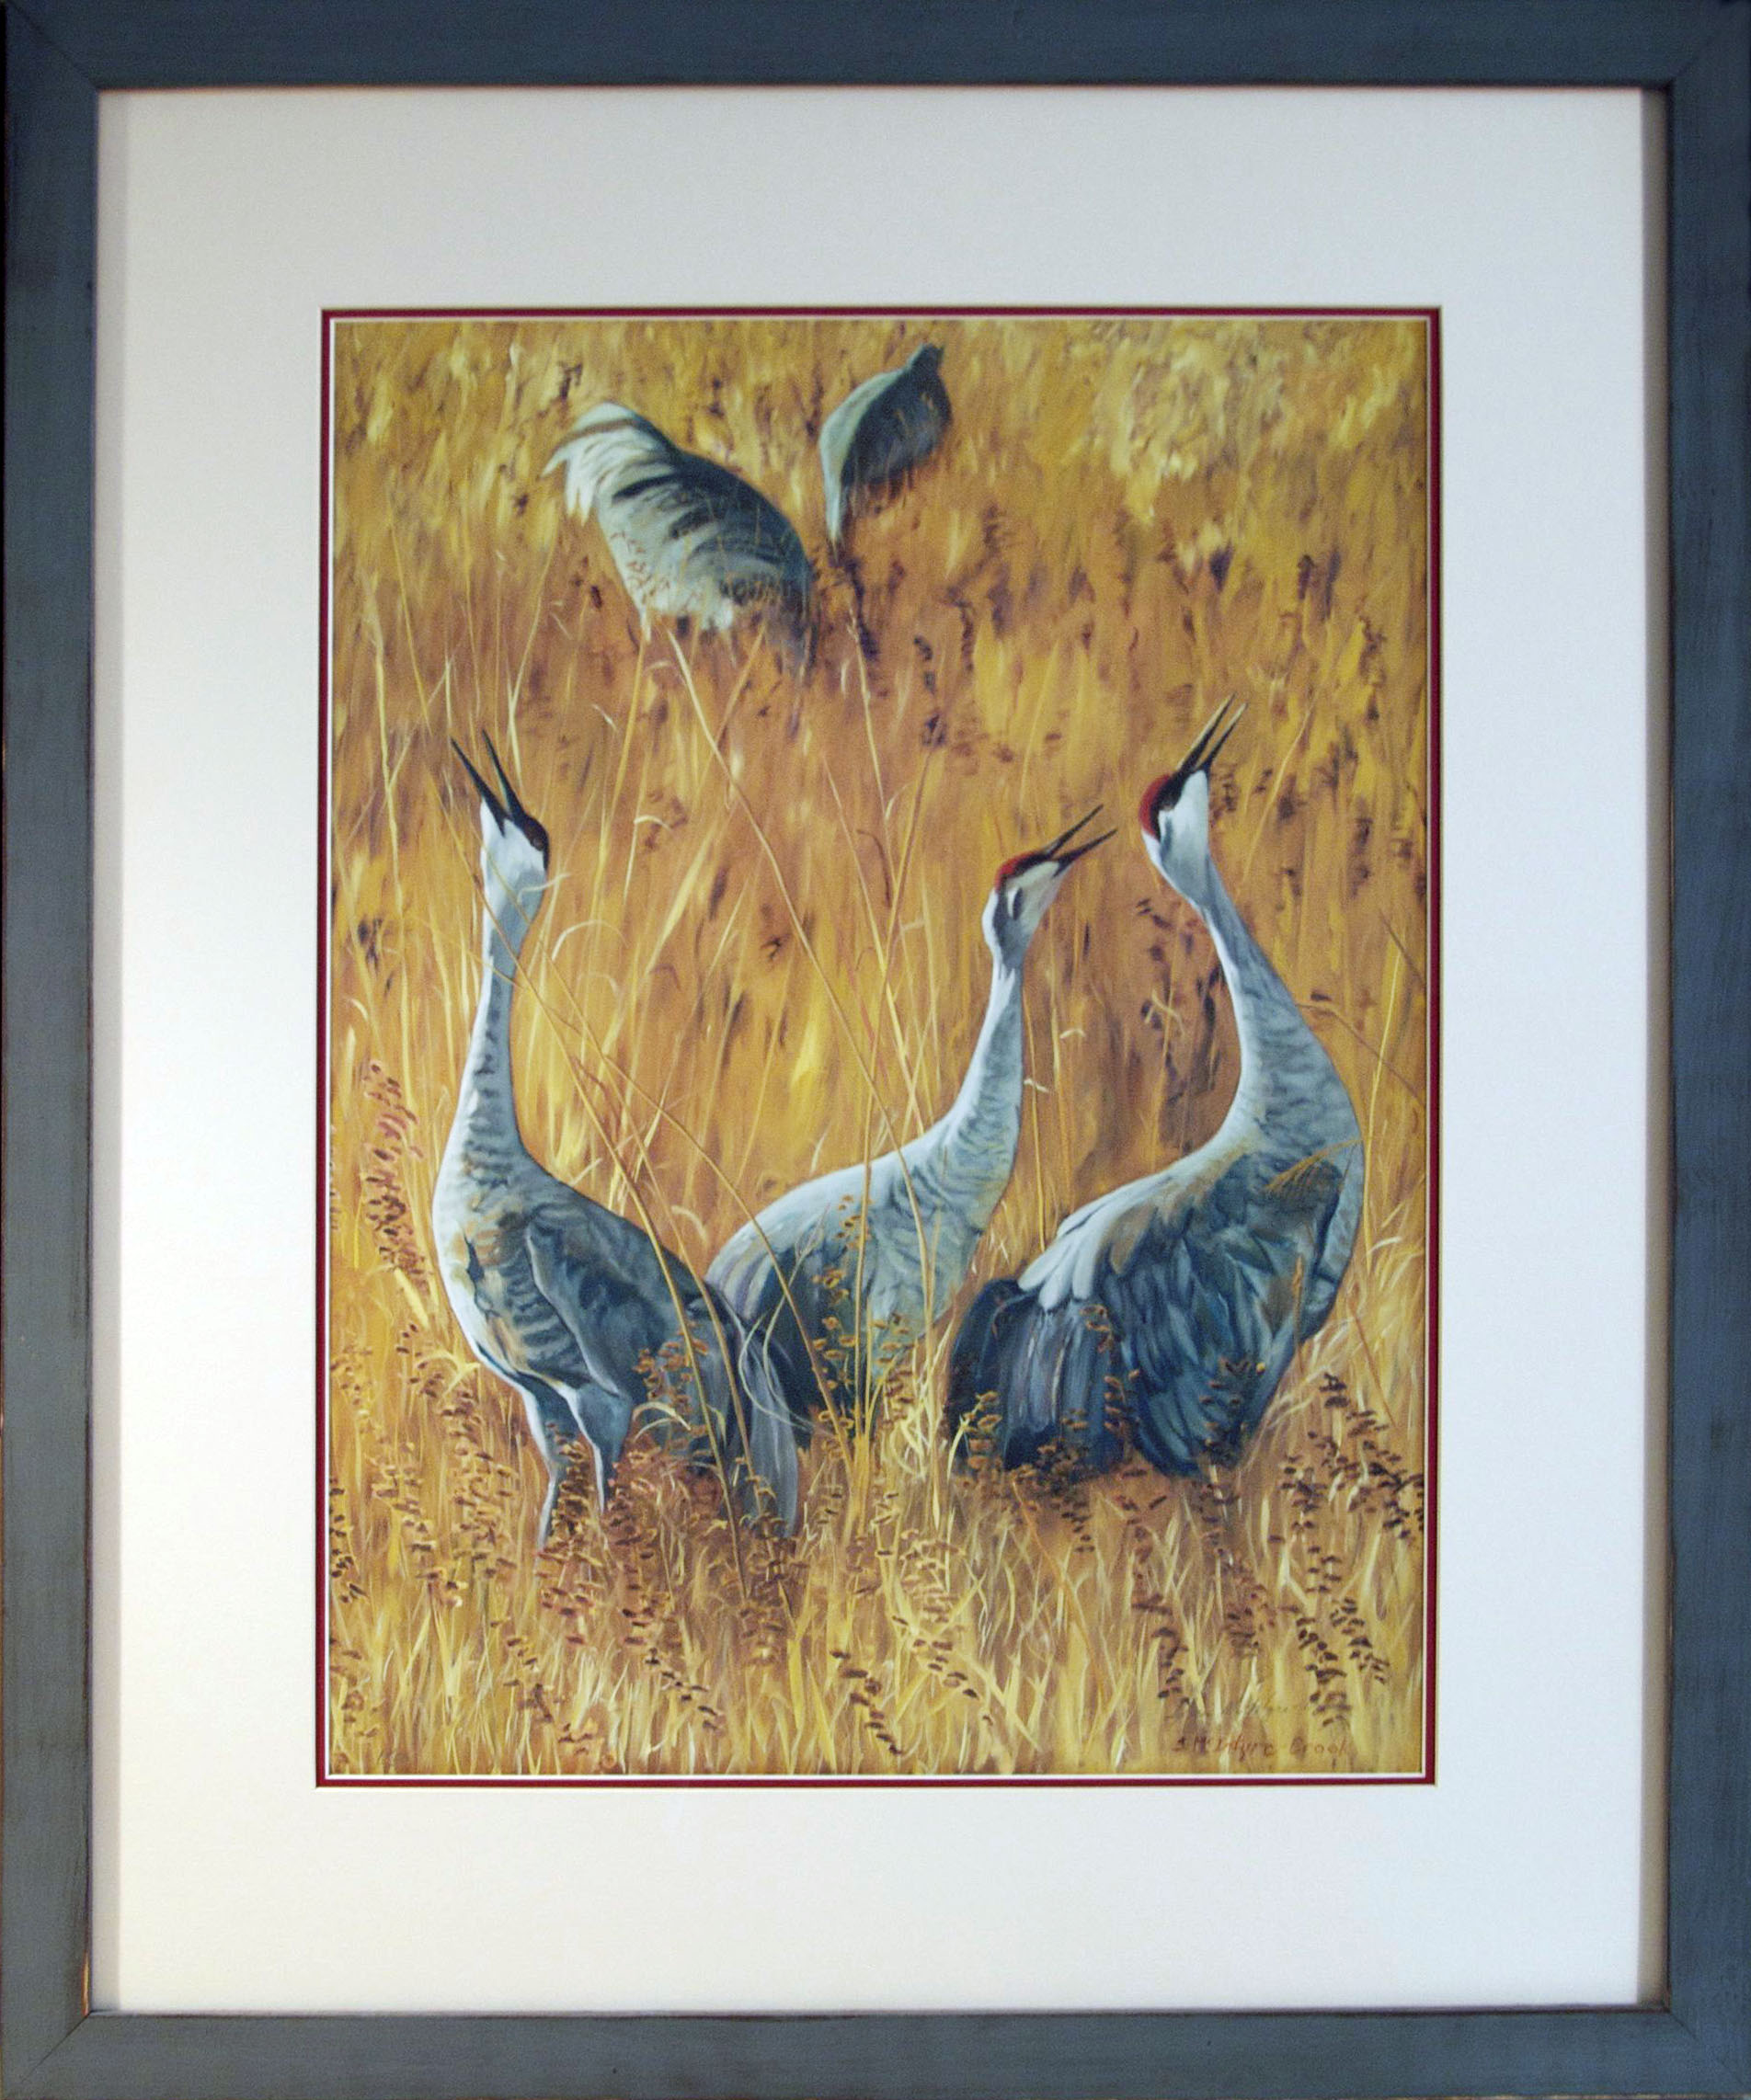 """Print: Sandhill Cranes Calling #4 of 50 limited edition  24"""" x 18"""" on frame: 29"""" x 34.5""""  Ultrachrome HDR ink; from original oil on canvass 'Sandhill Cranes Calling'; 48""""x 36""""  $550.00"""